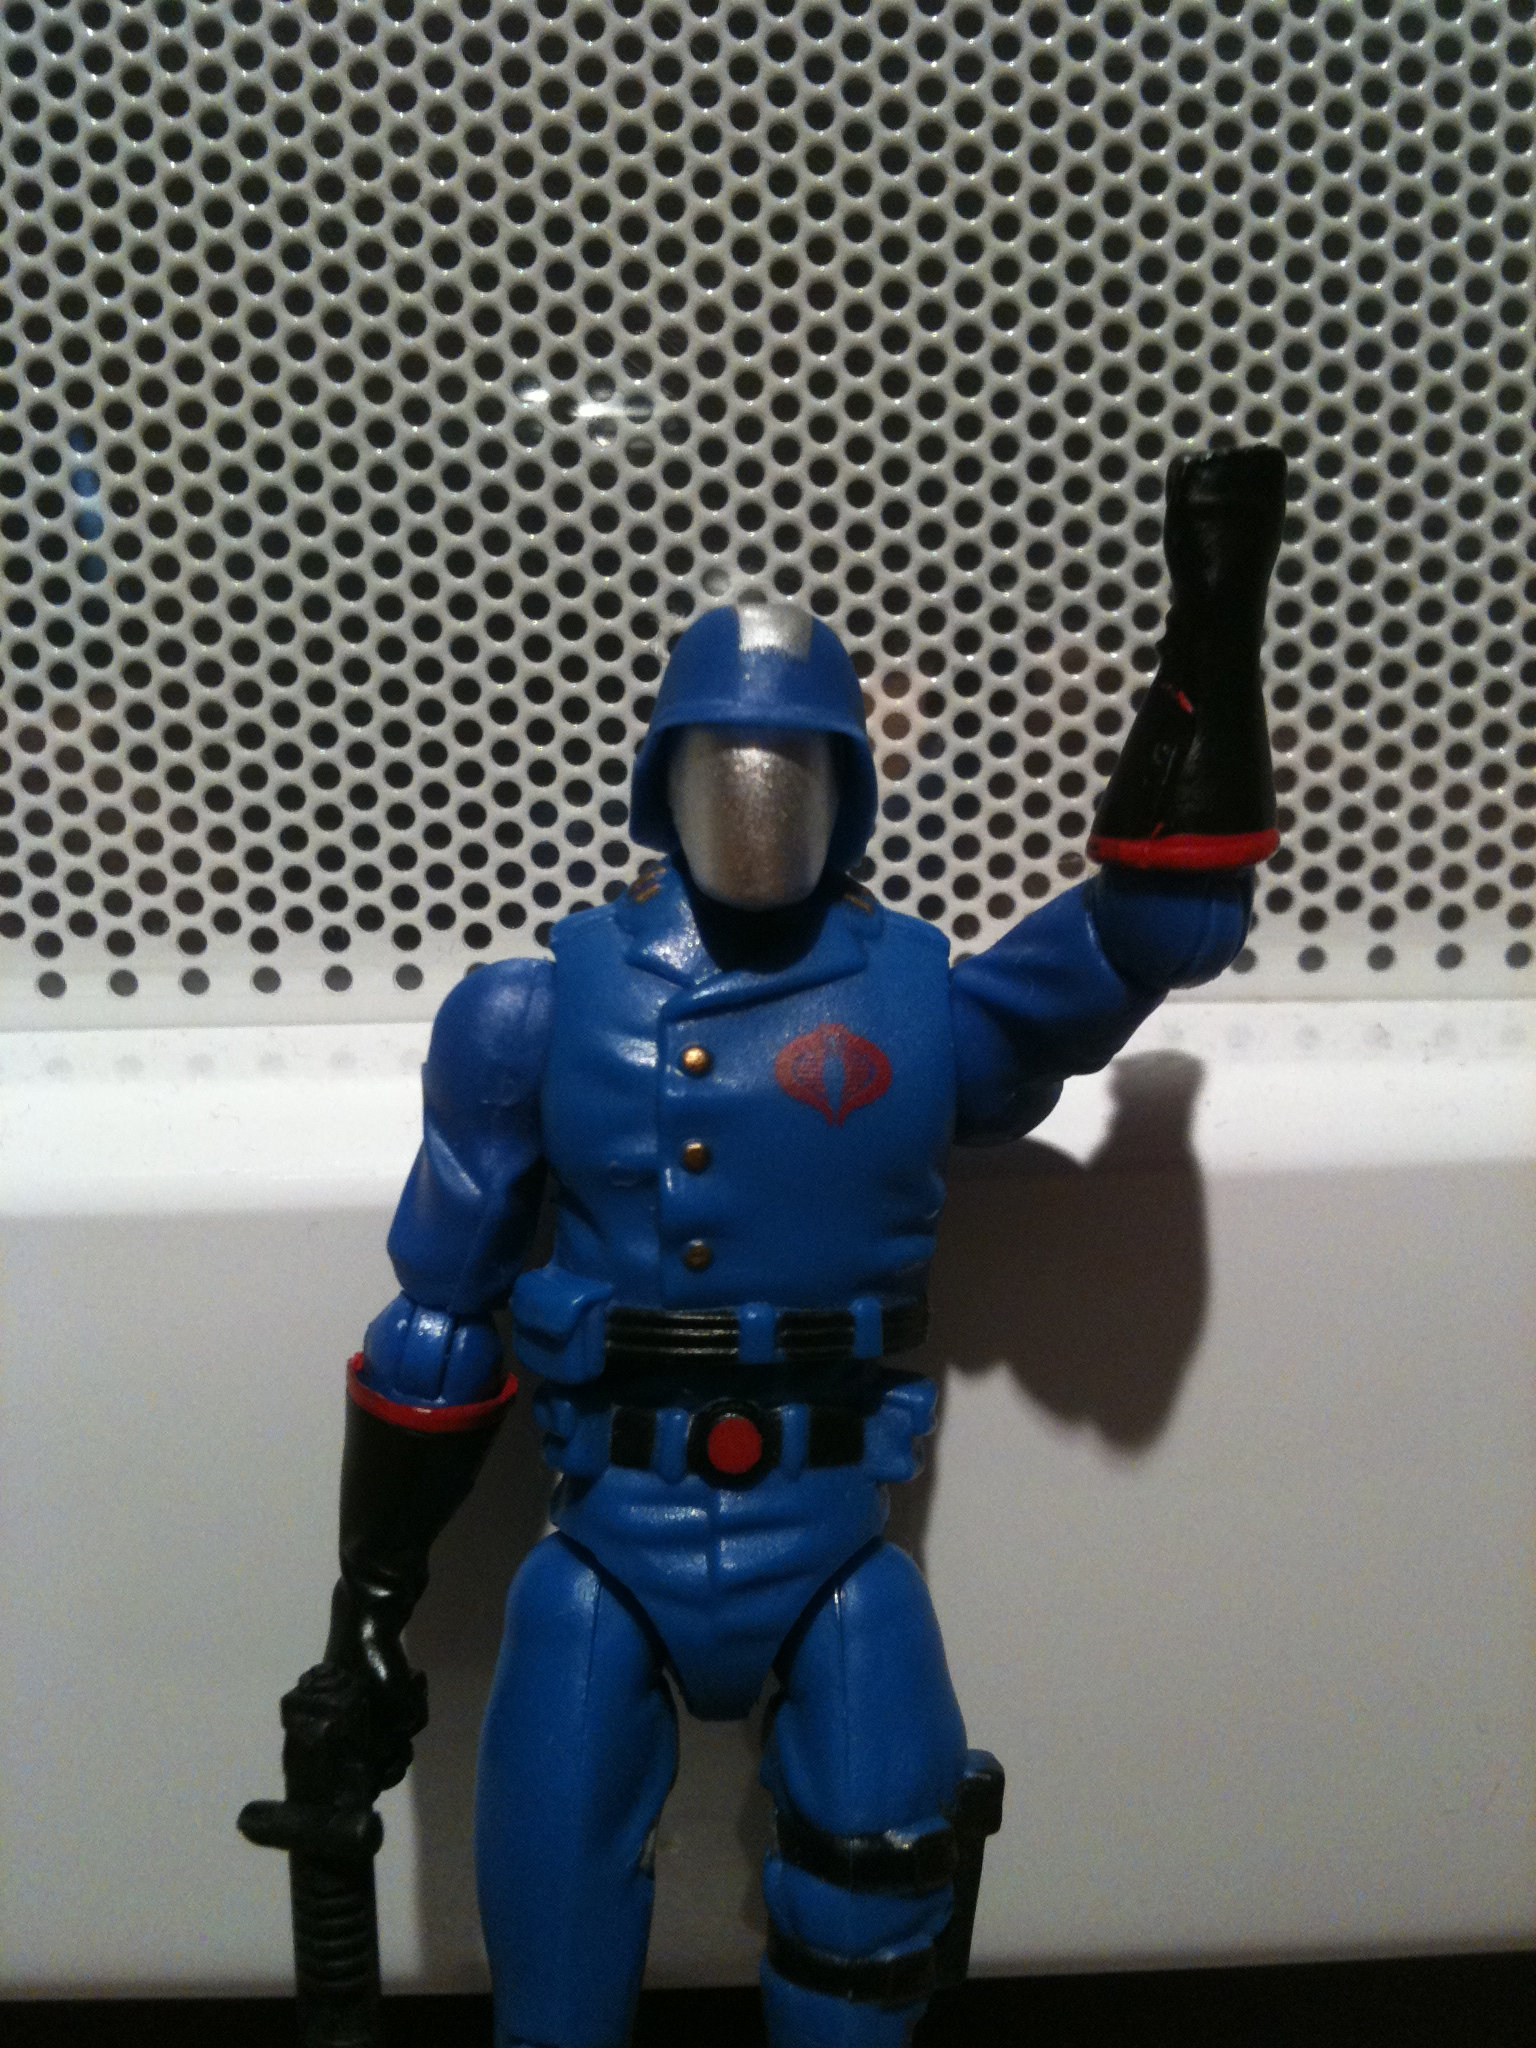 Cobra Commander action figure raising an angry fist.